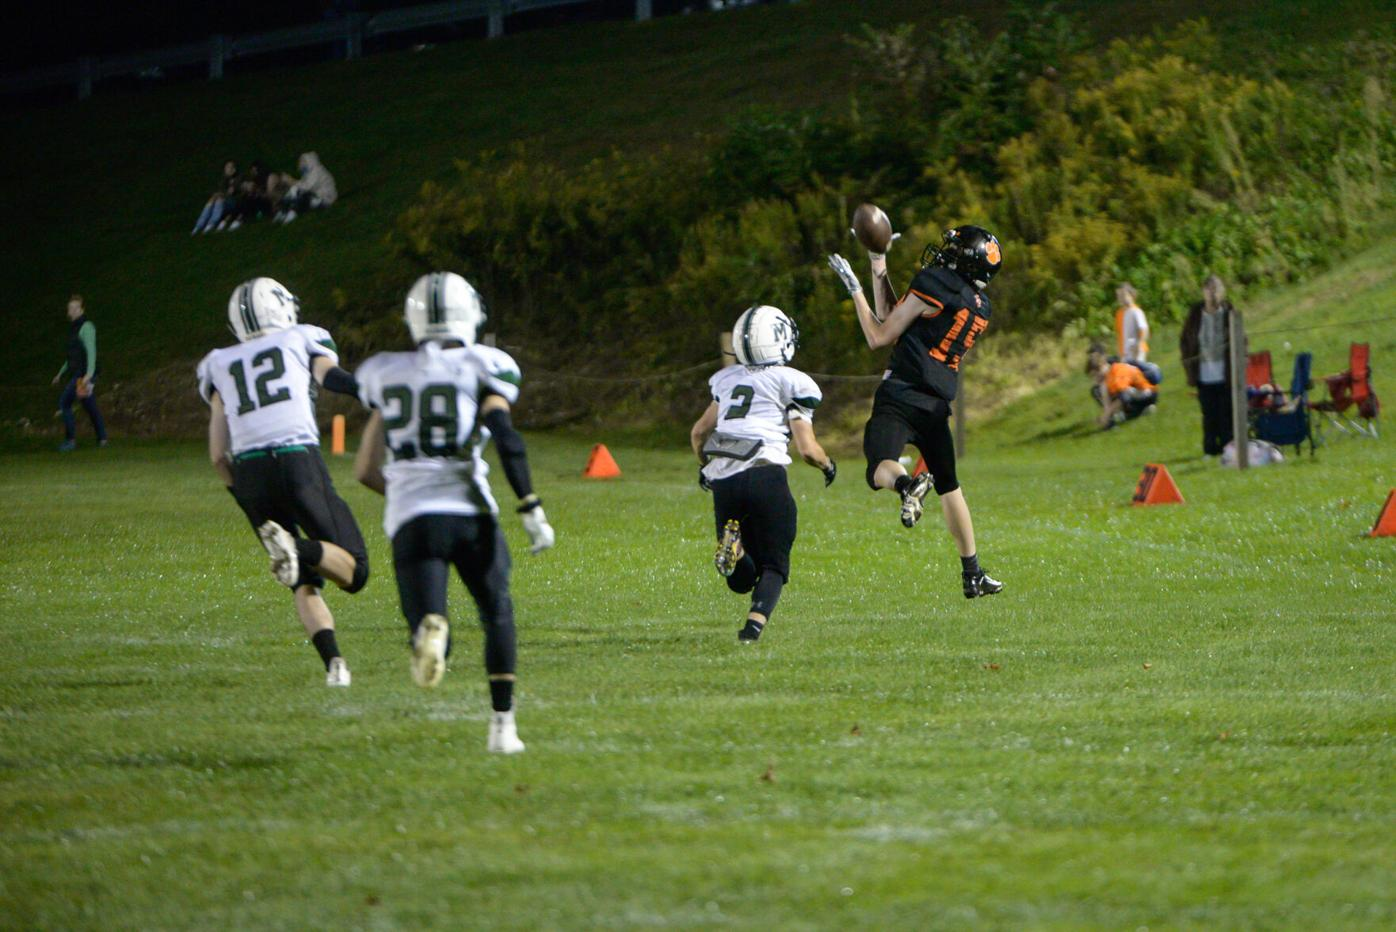 dylan ely catches a pass